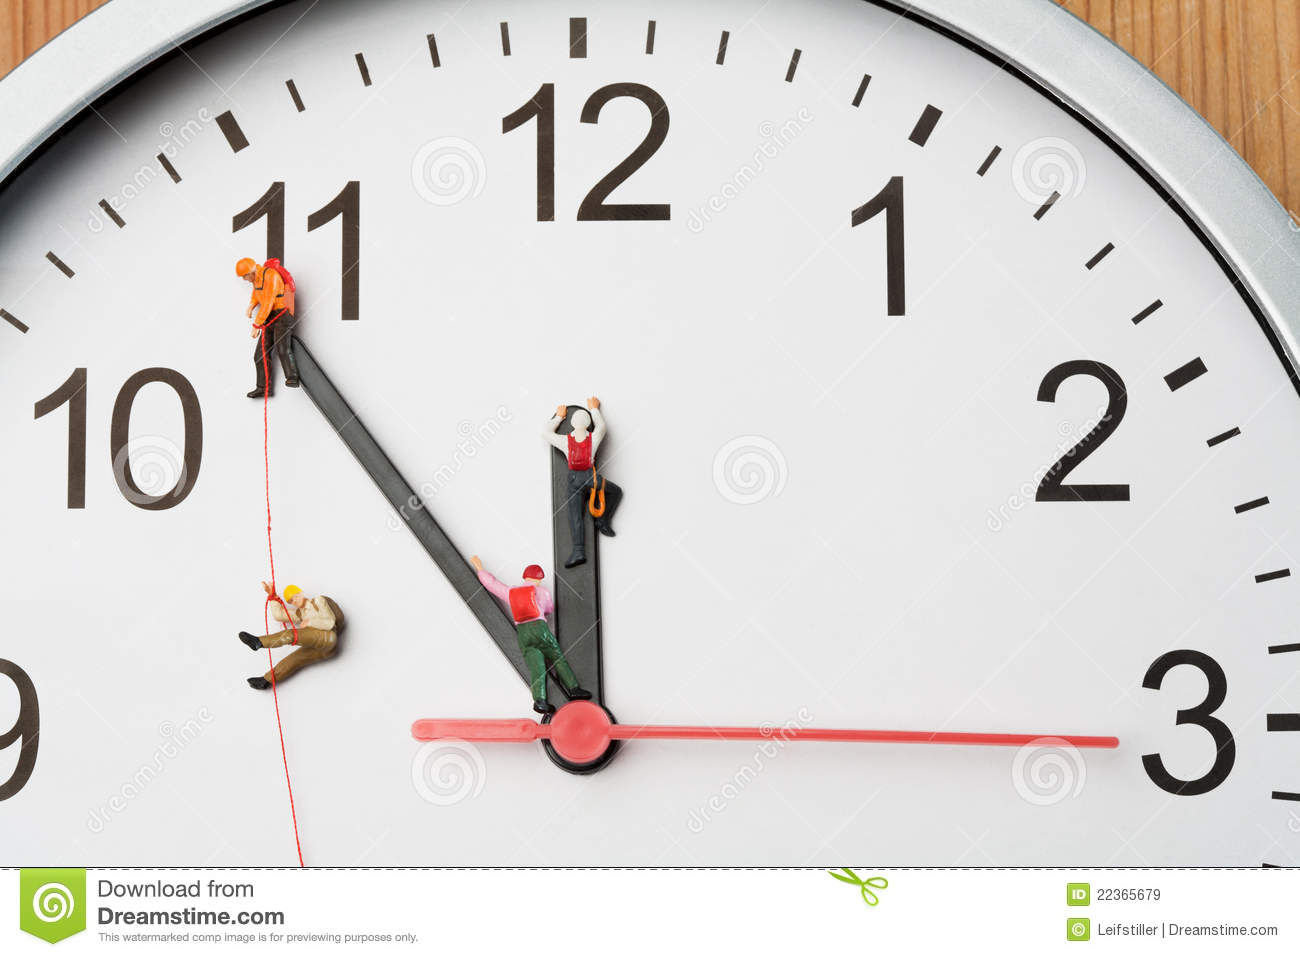 Royalty Free Stock Images Miniature People Climbing Clock Image22365679 moreover Royalty Free Stock Photo Chocolate Cartoon Image11841675 also Nature beach sand trees bali sea in addition Field hill forest trees fence landscape besides Robin 40D Pp 00676. on nature settings